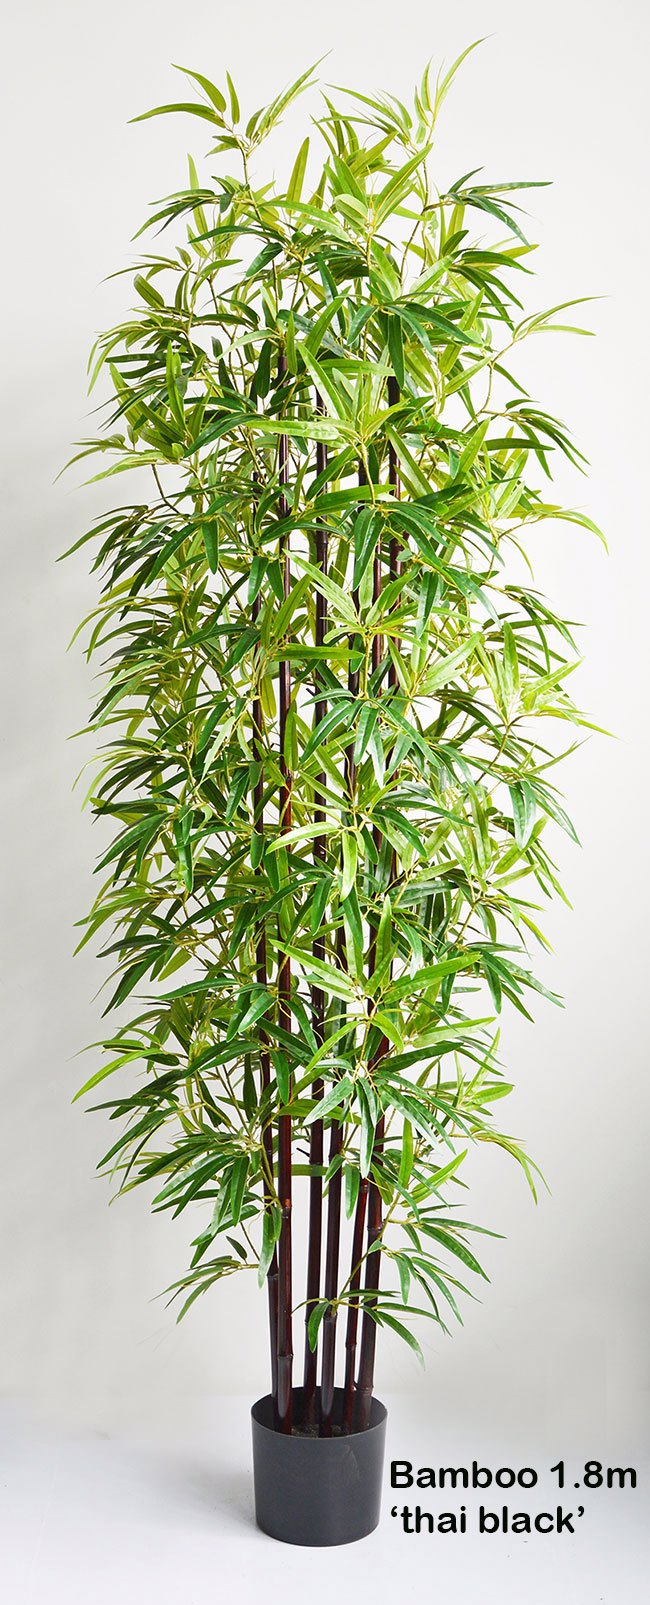 Articial Plants - Bamboo 'thai monsoon' 1.8m